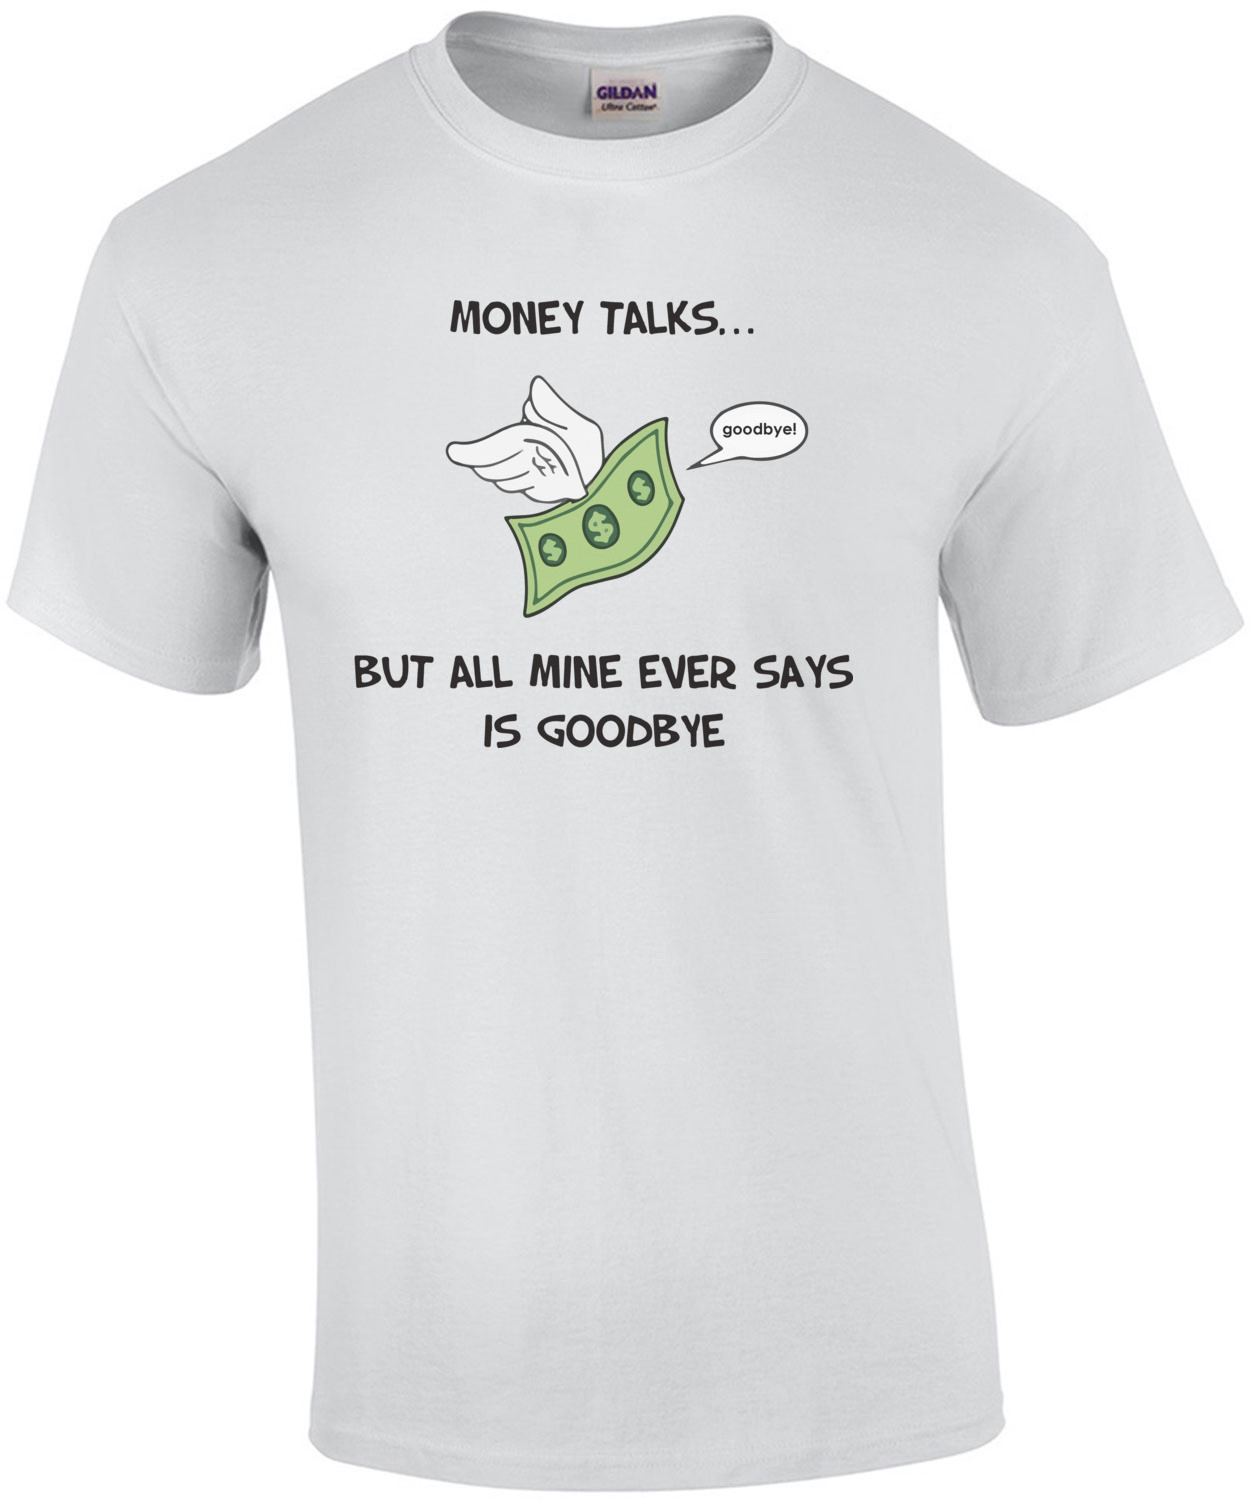 Money Talks... But all mine ever says is goodbye. Funny